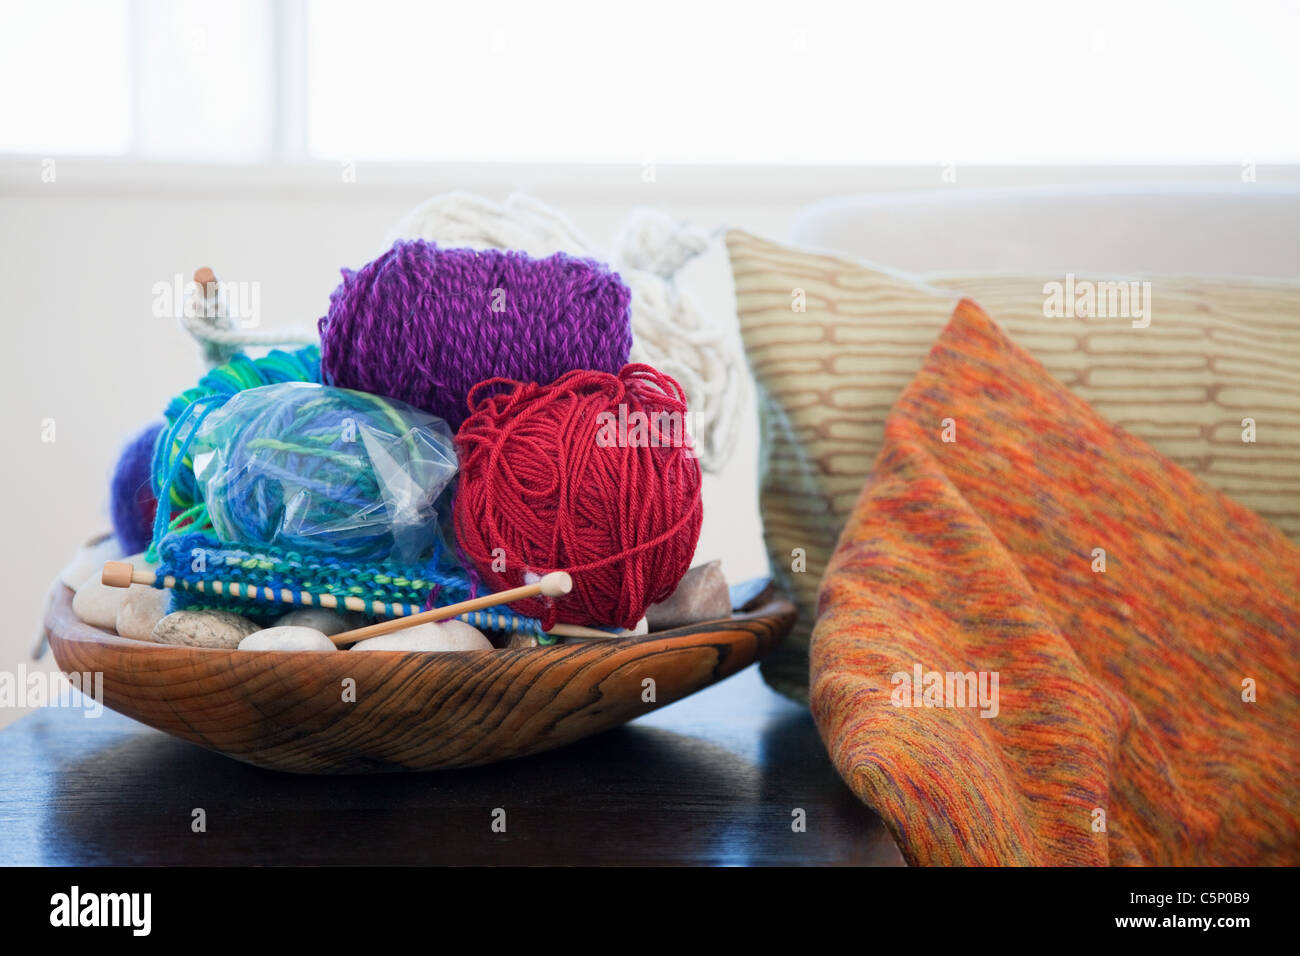 Balls of wool and knitting needles - Stock Image